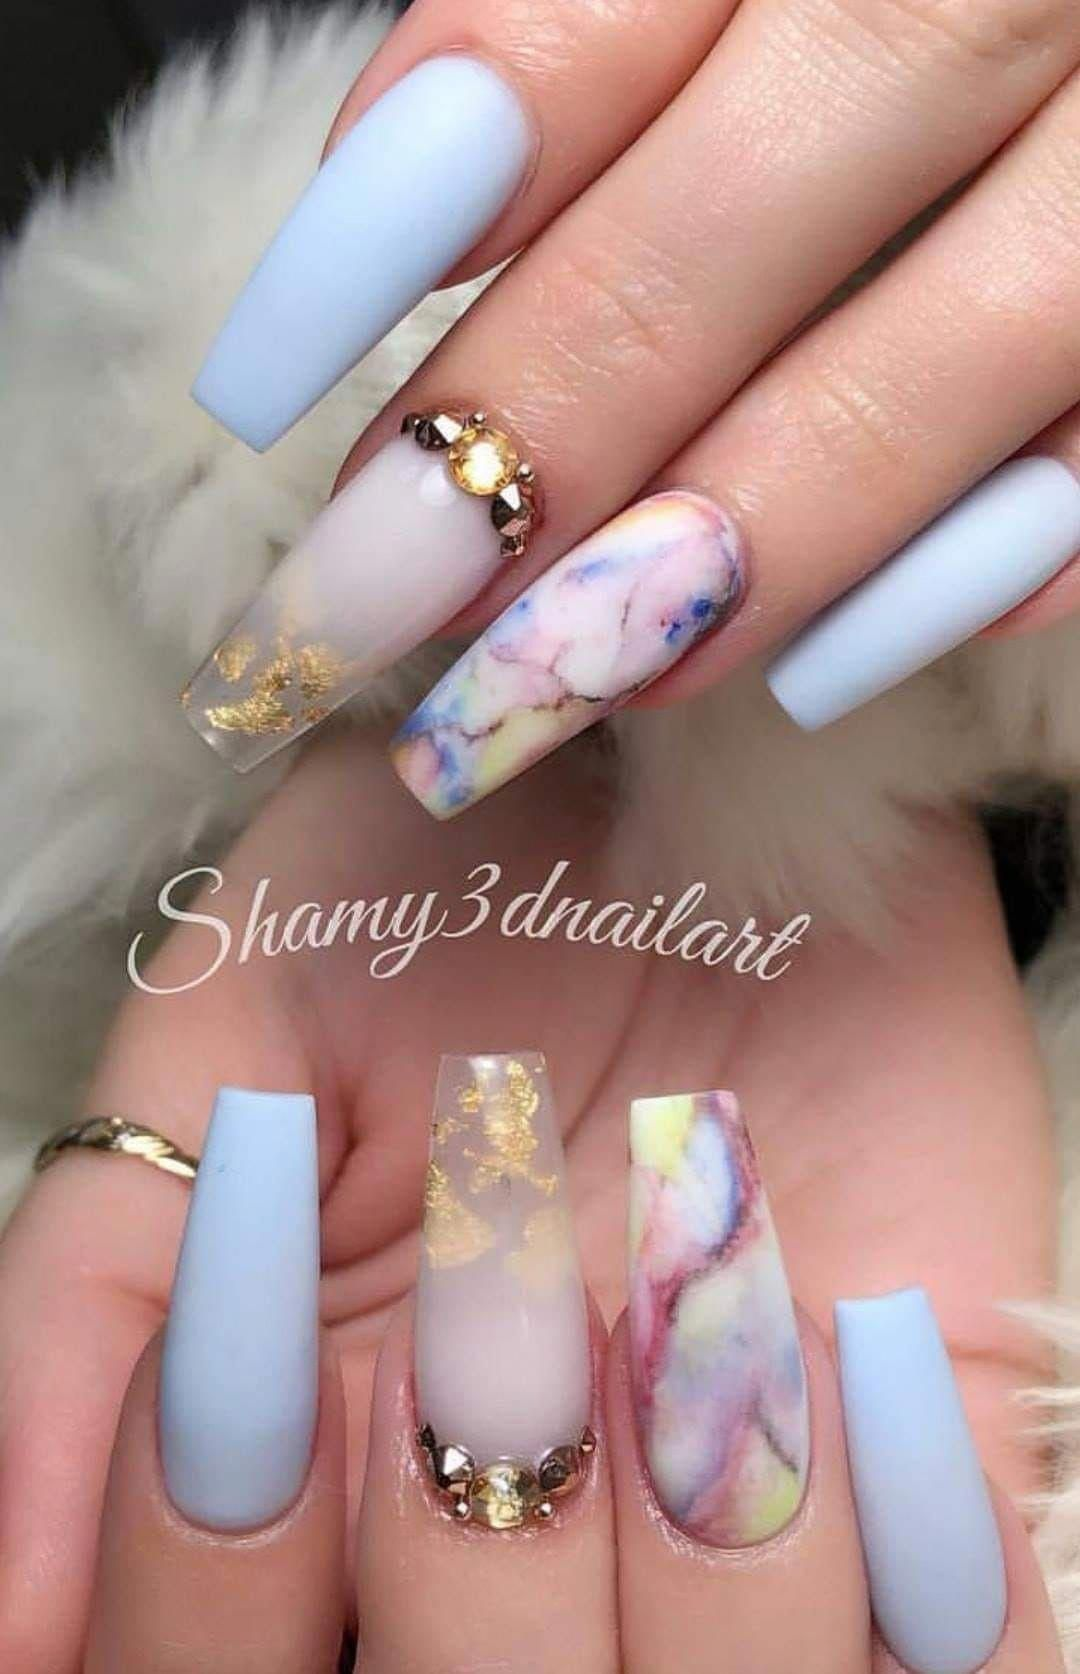 15 Cute Nail Art Designs To Welcome Summer With Images Coffin